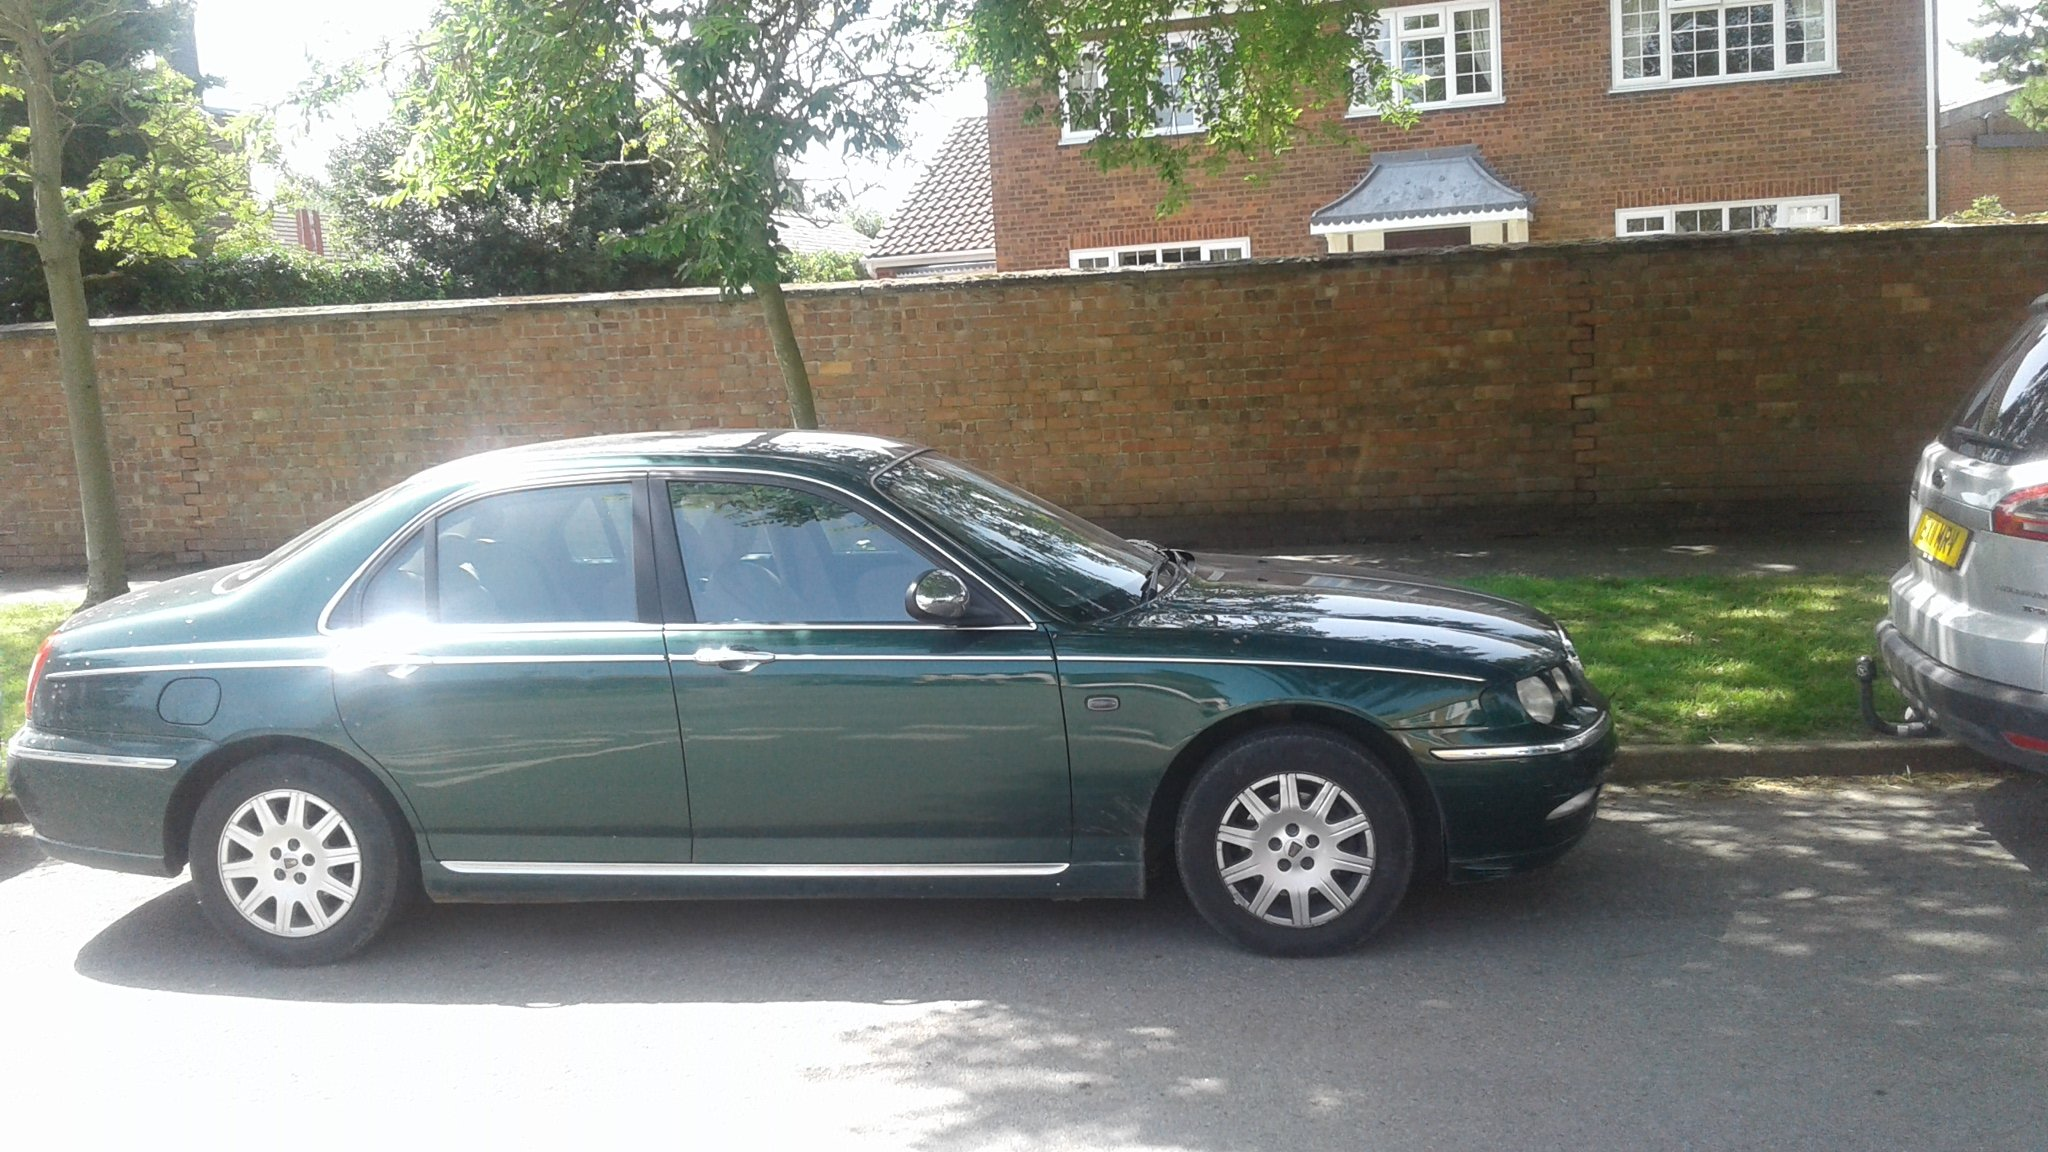 2002 Rover 75 Future Classic For Sale (picture 1 of 6)